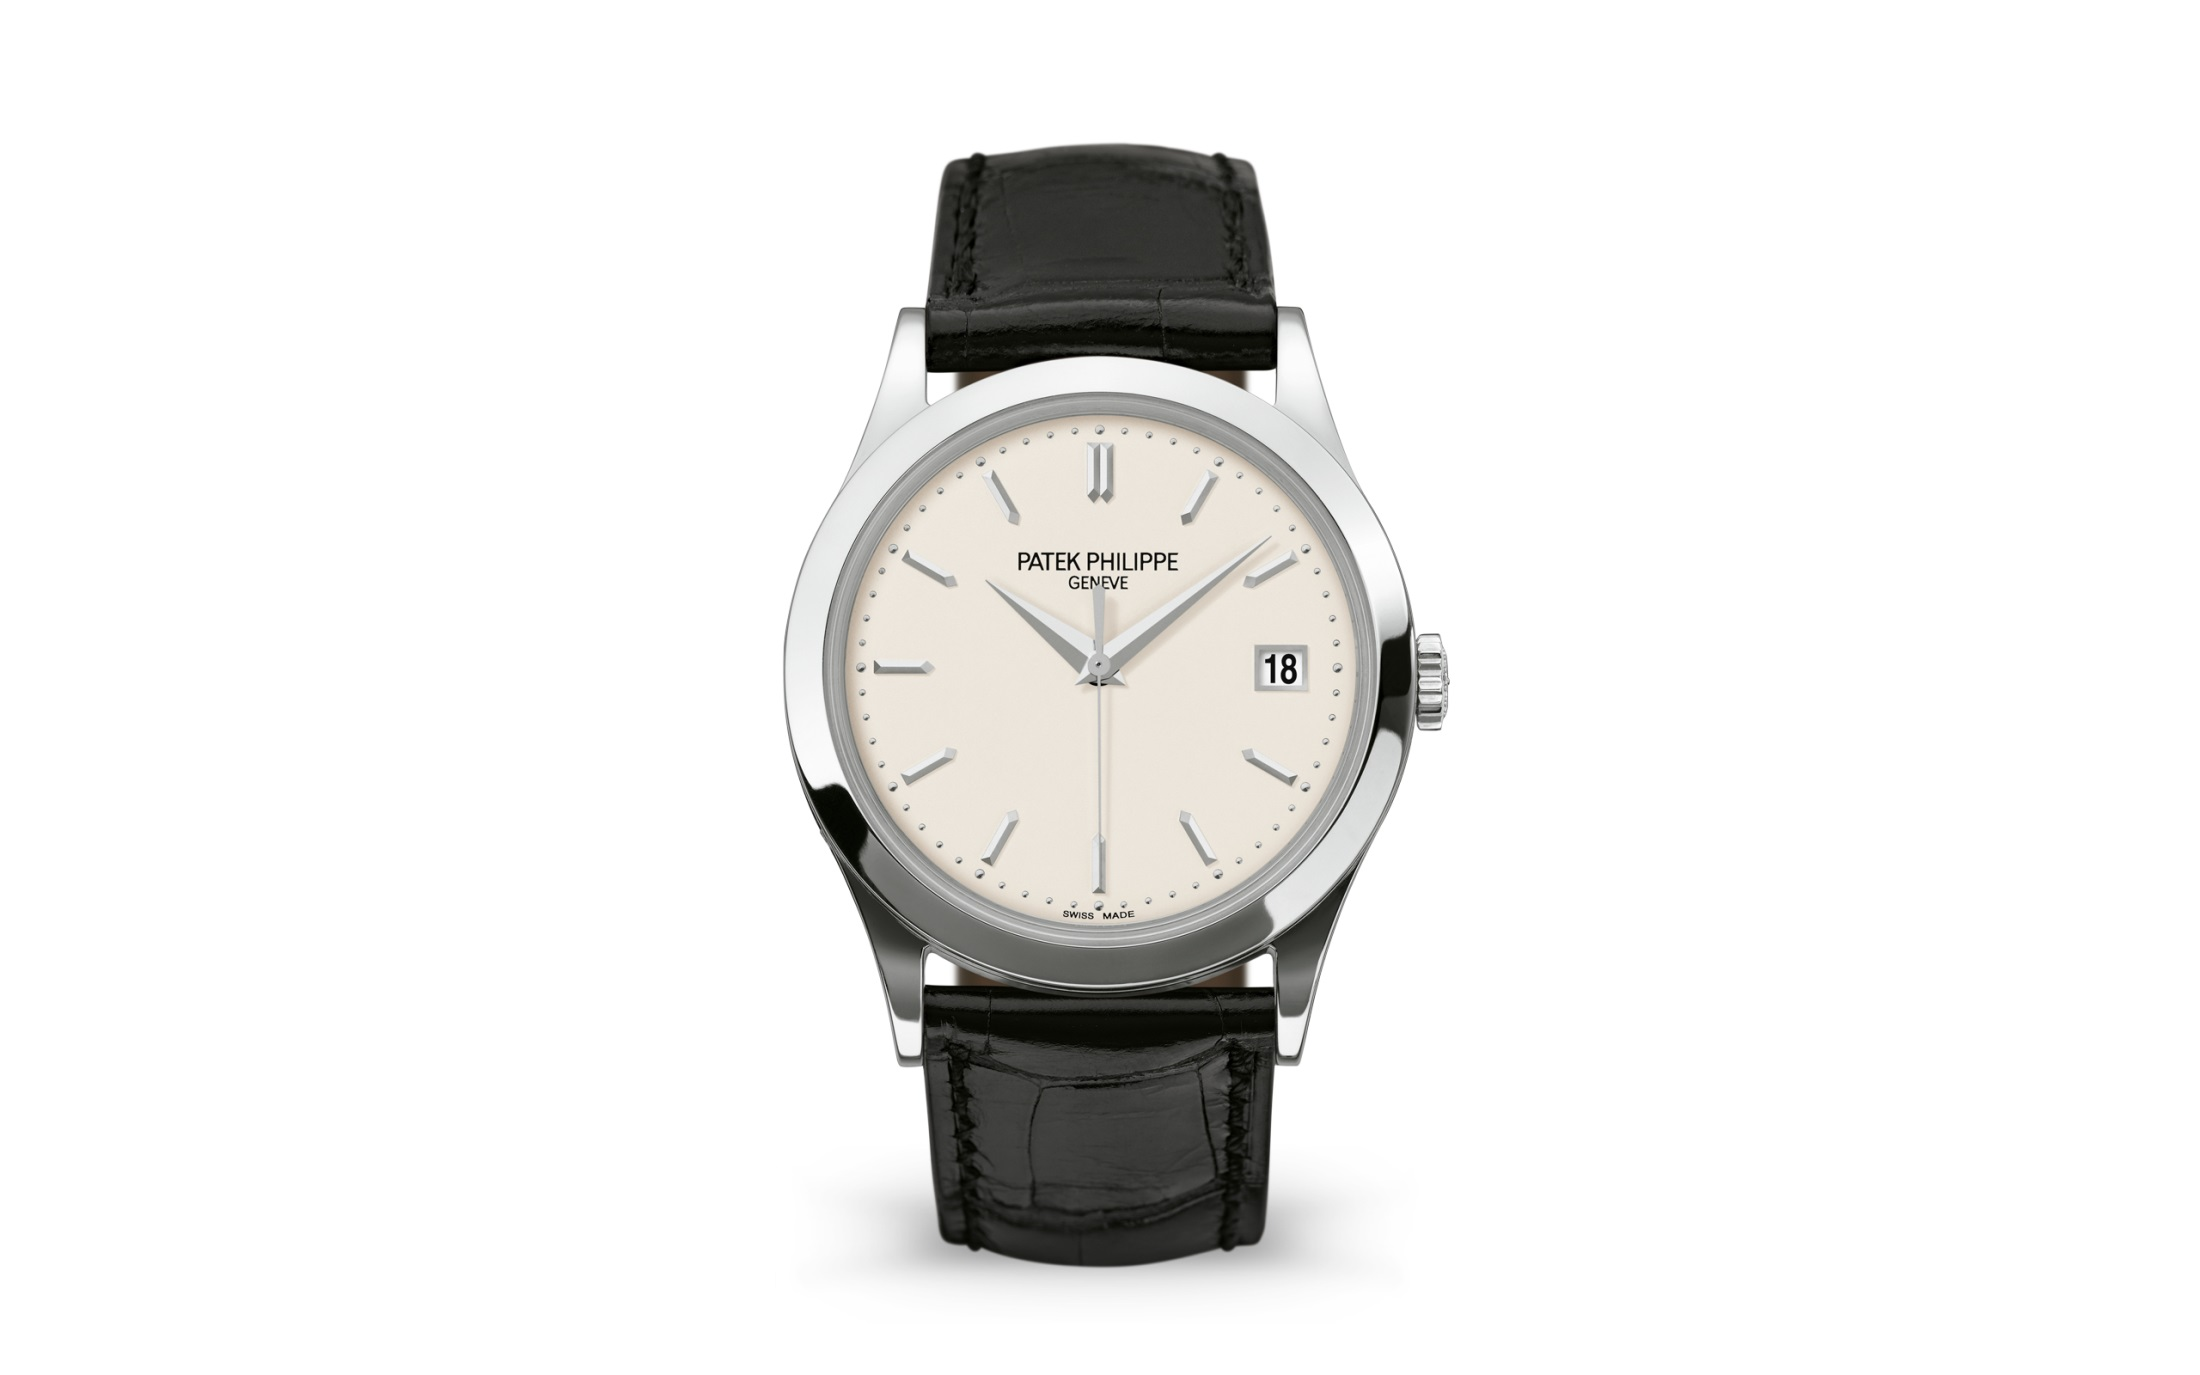 The black leather strap fitted on the silvery dial makes the watch more suitable for formal occasions.